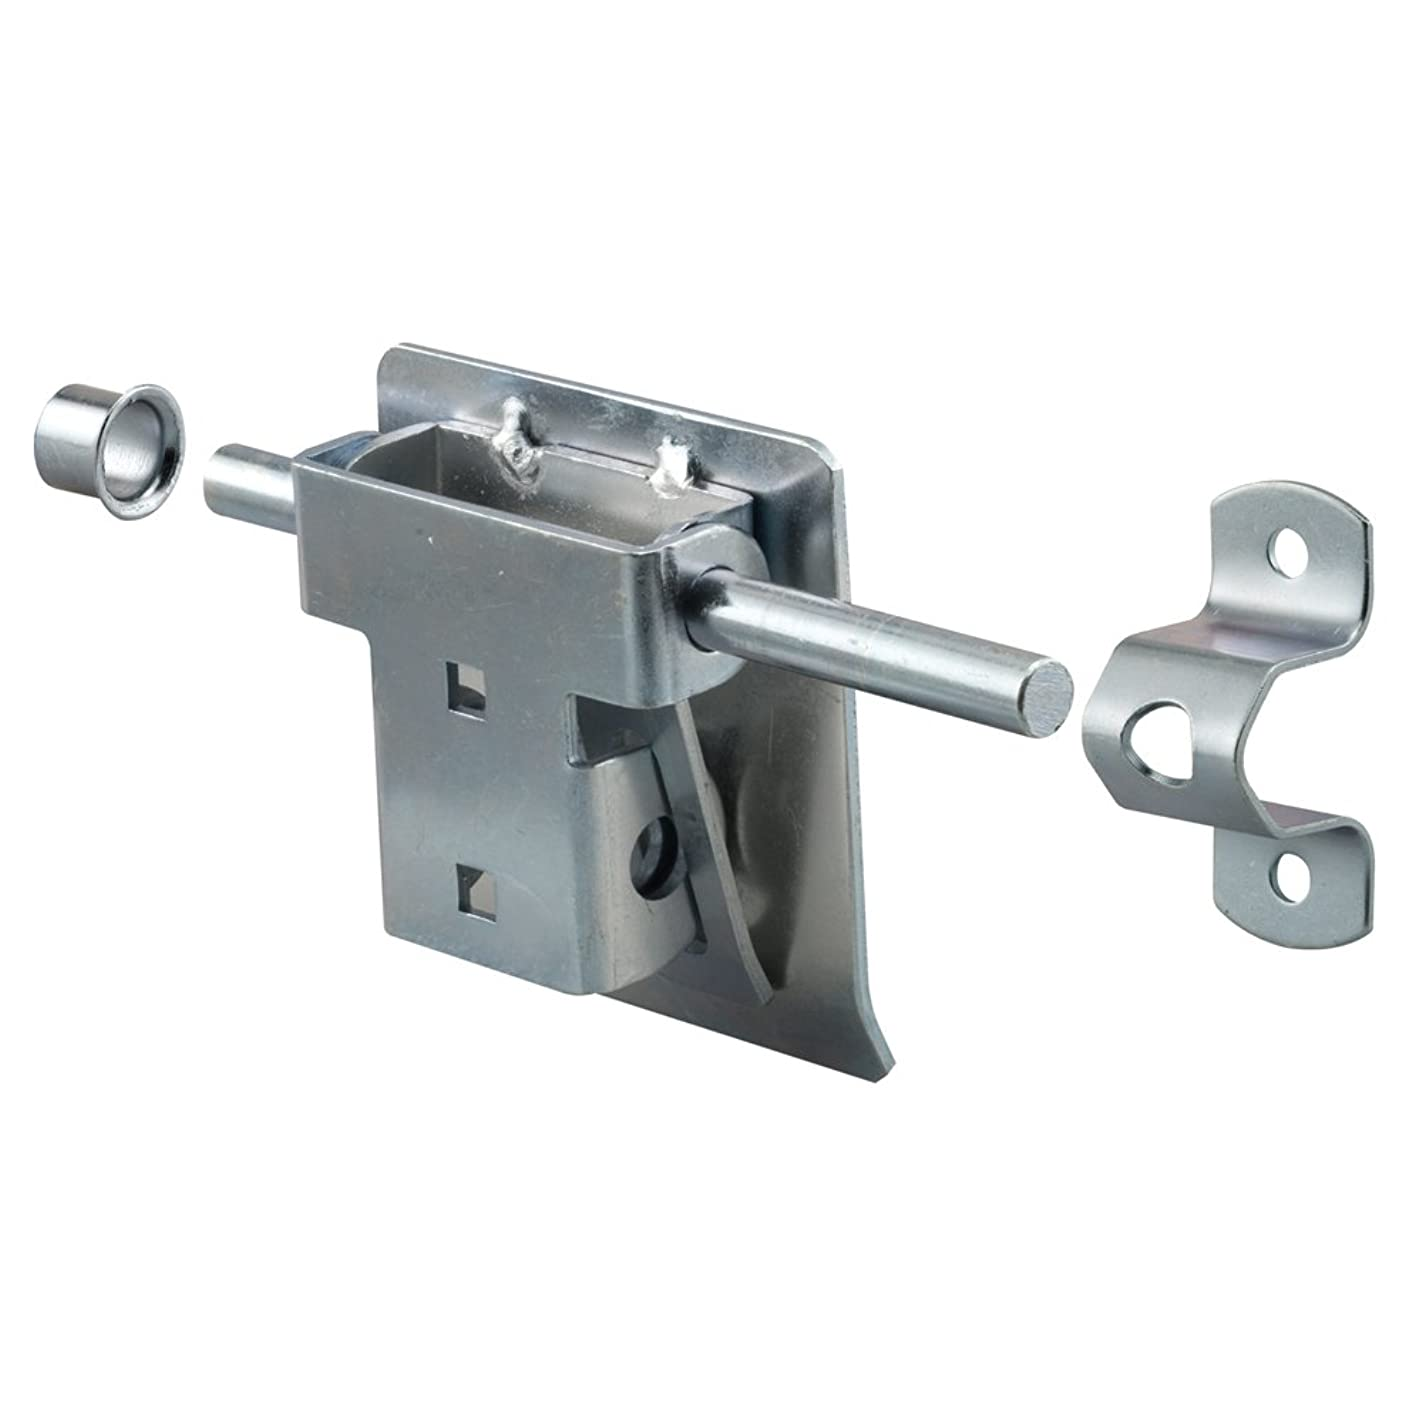 Prime-Line Products GD 52241 Garage and Shed Latch, Tamper Proof with Fastners, Heavy Duty Steel